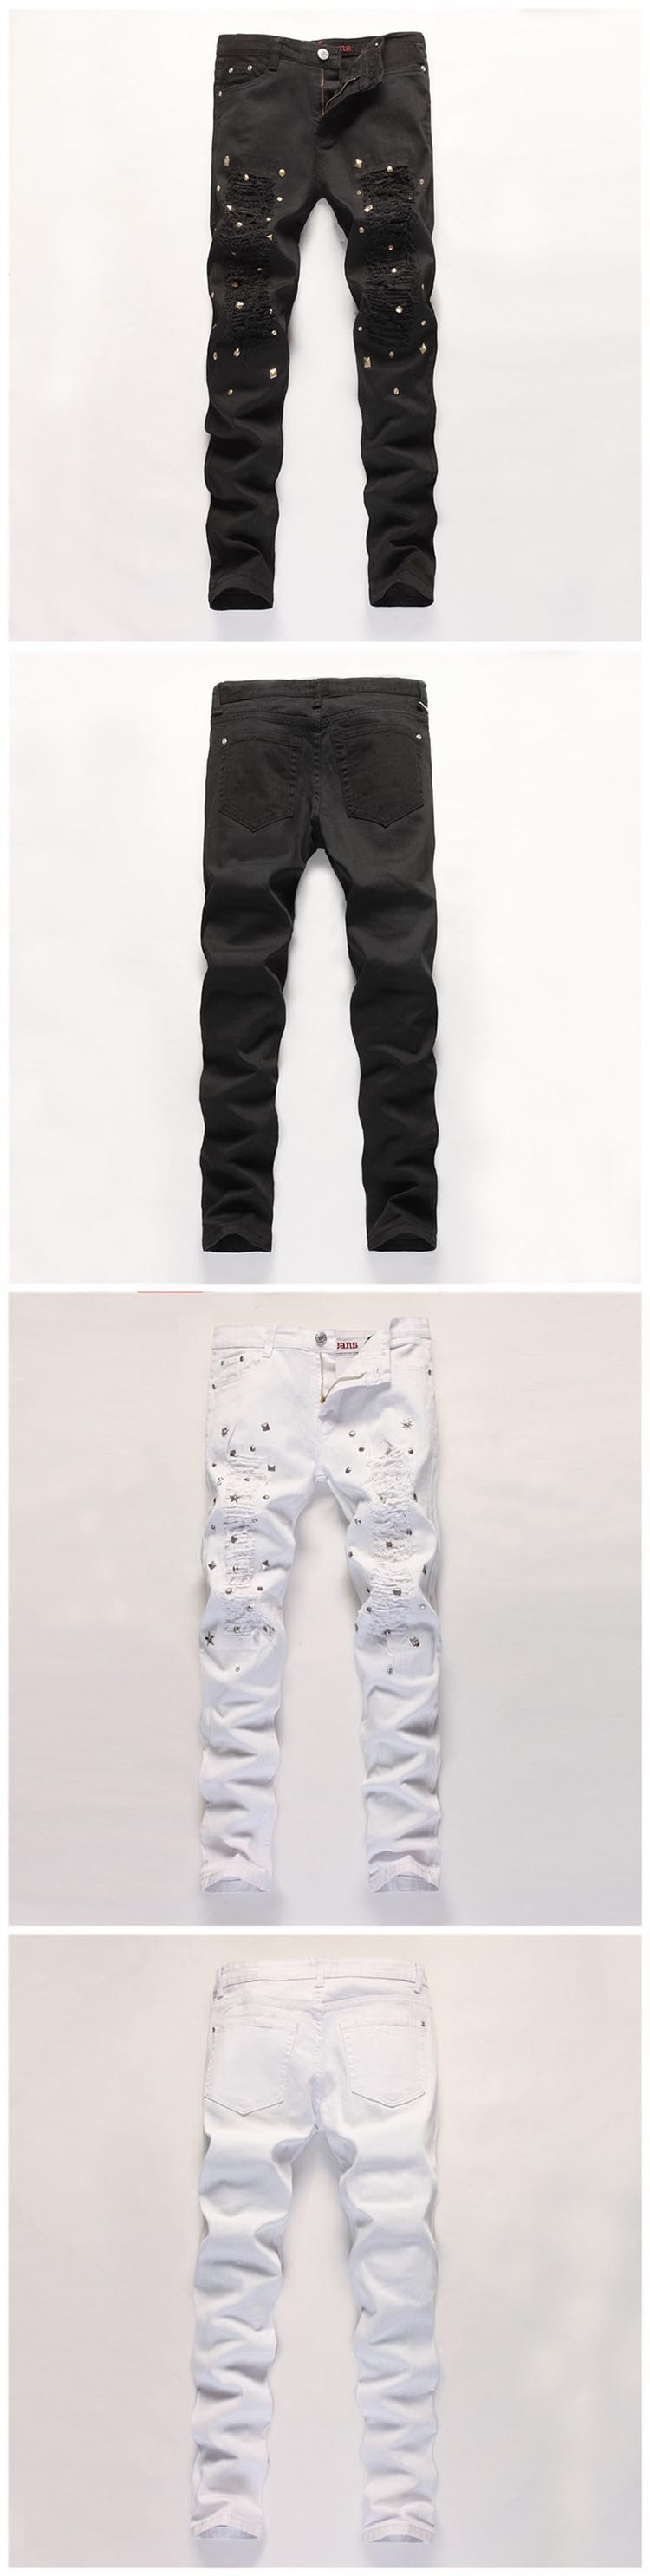 Hot pants playing nail holes Men's jeans Europe and the United States Slim men feet pants Black and white color Size 30-36